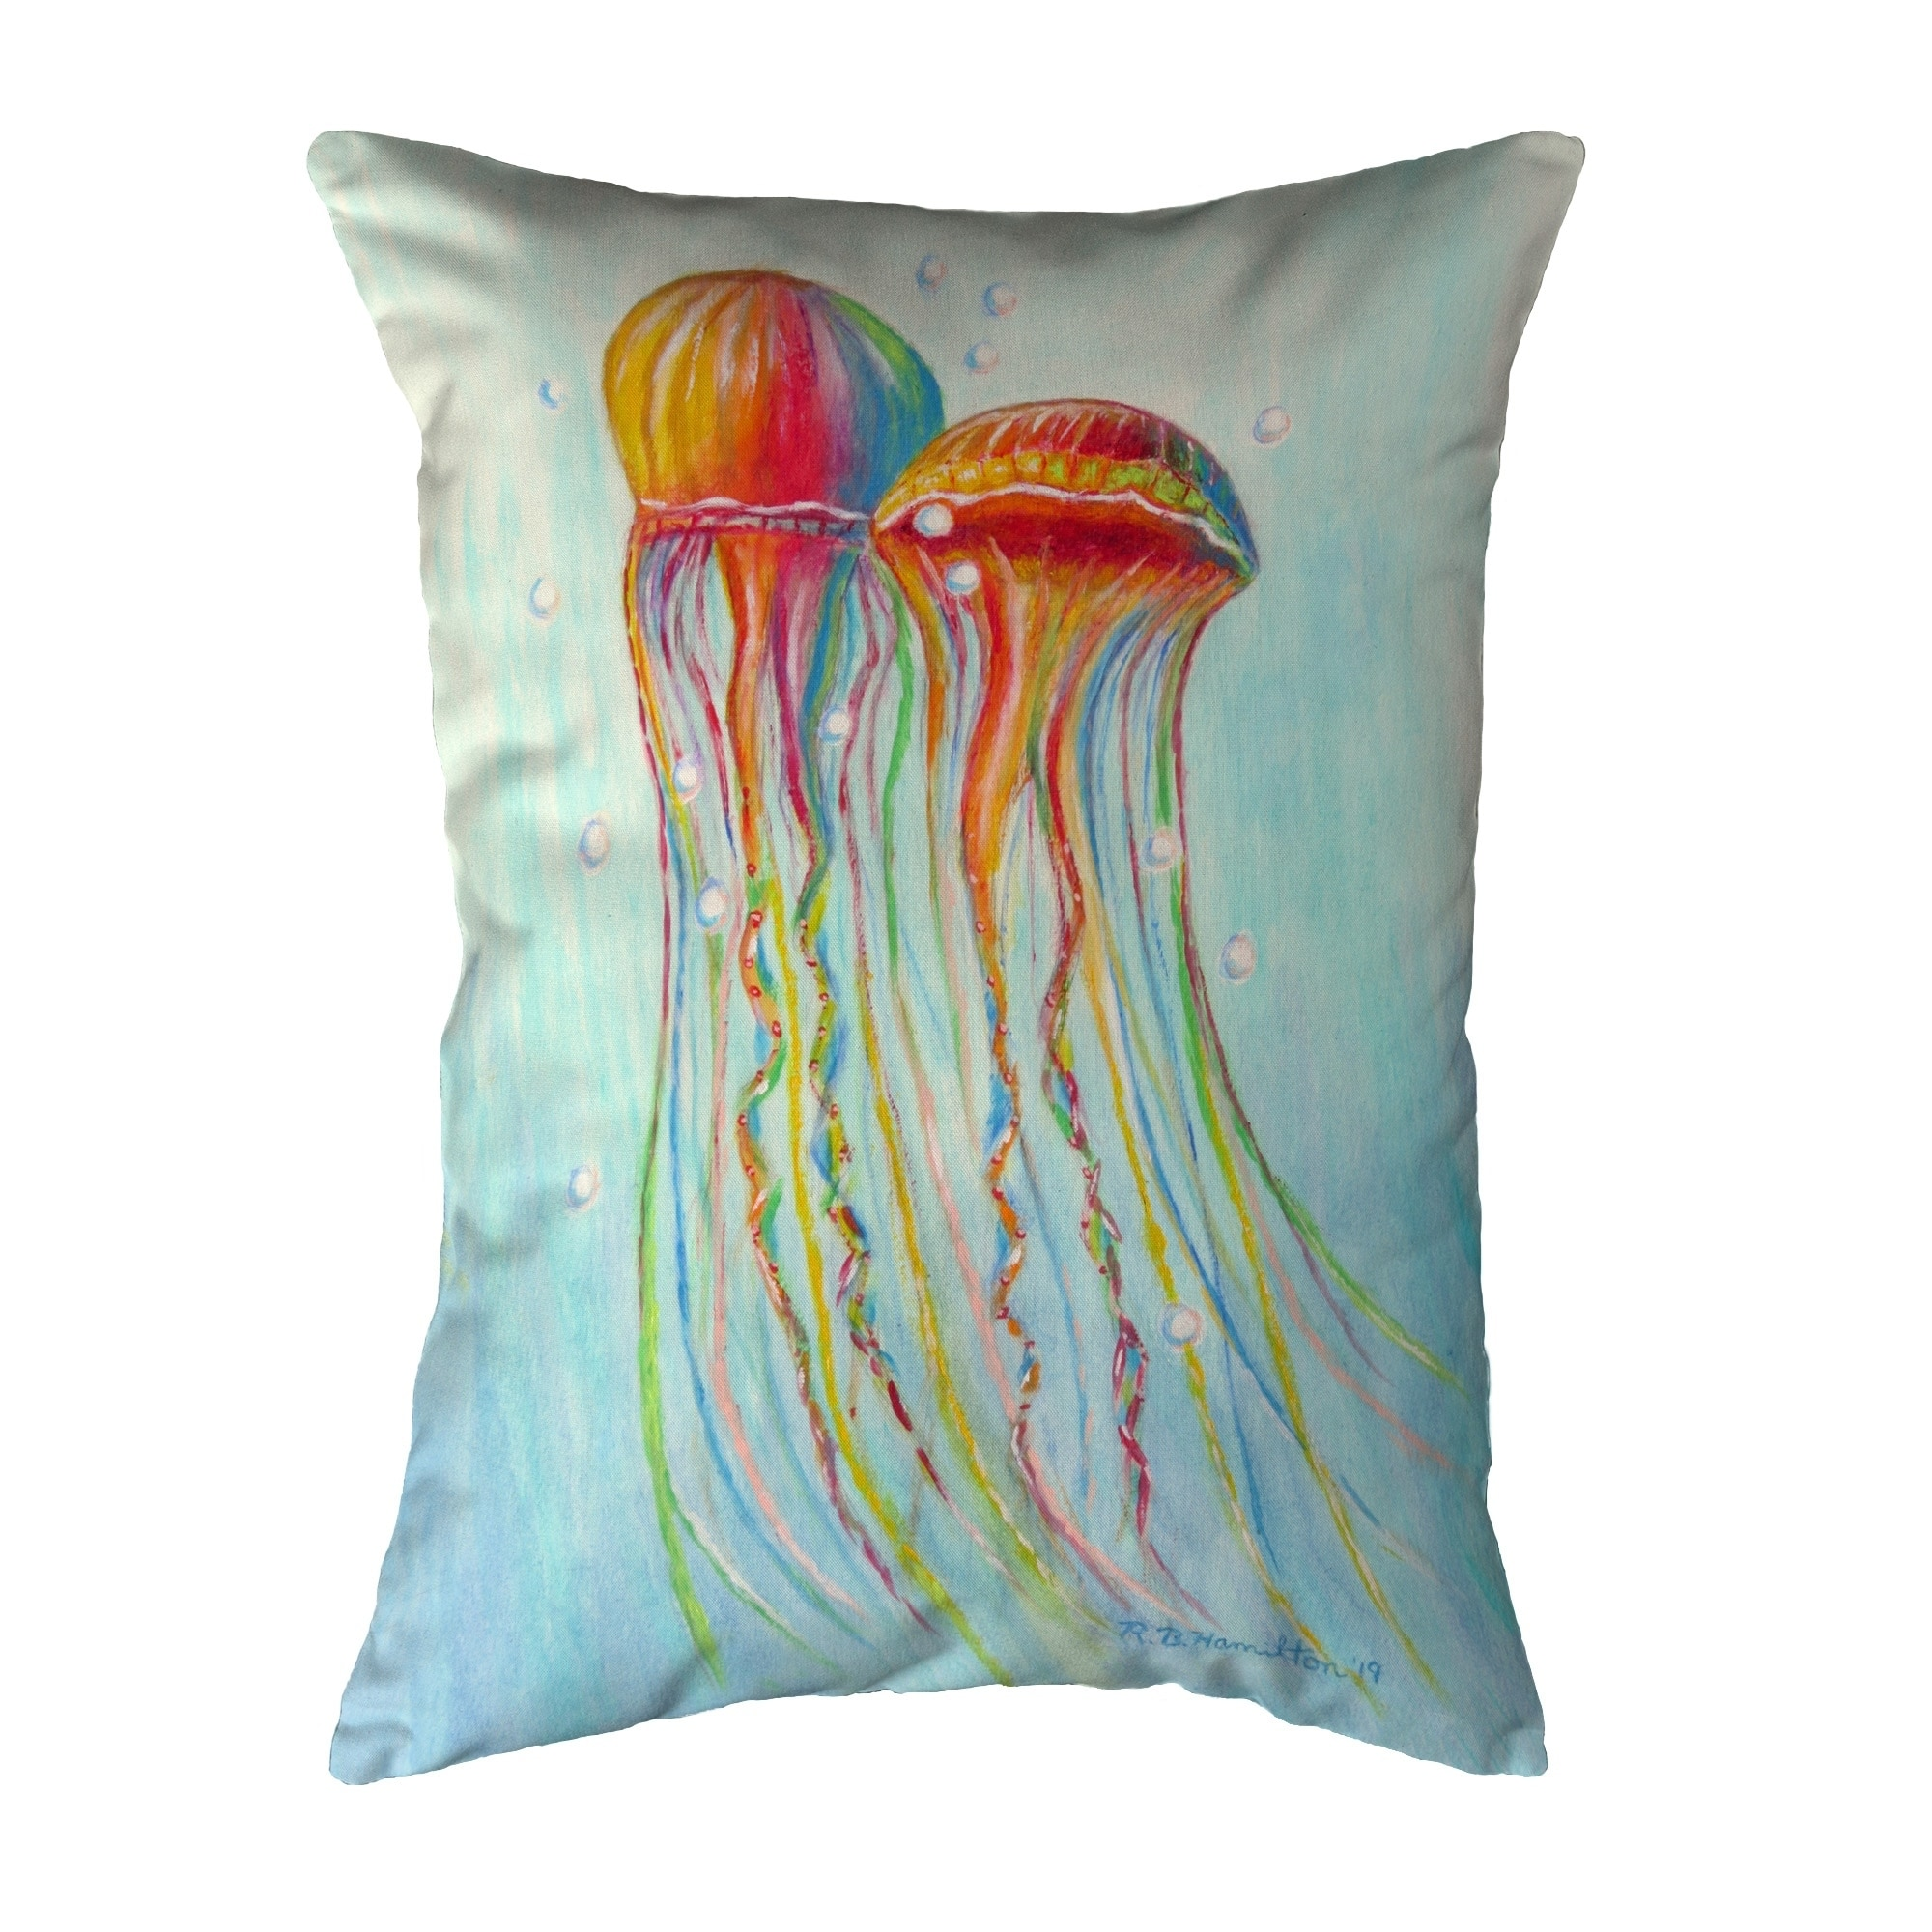 Colorful Jellyfish Extra Large Zippered Pillow 16x20 On Sale Overstock 30420917